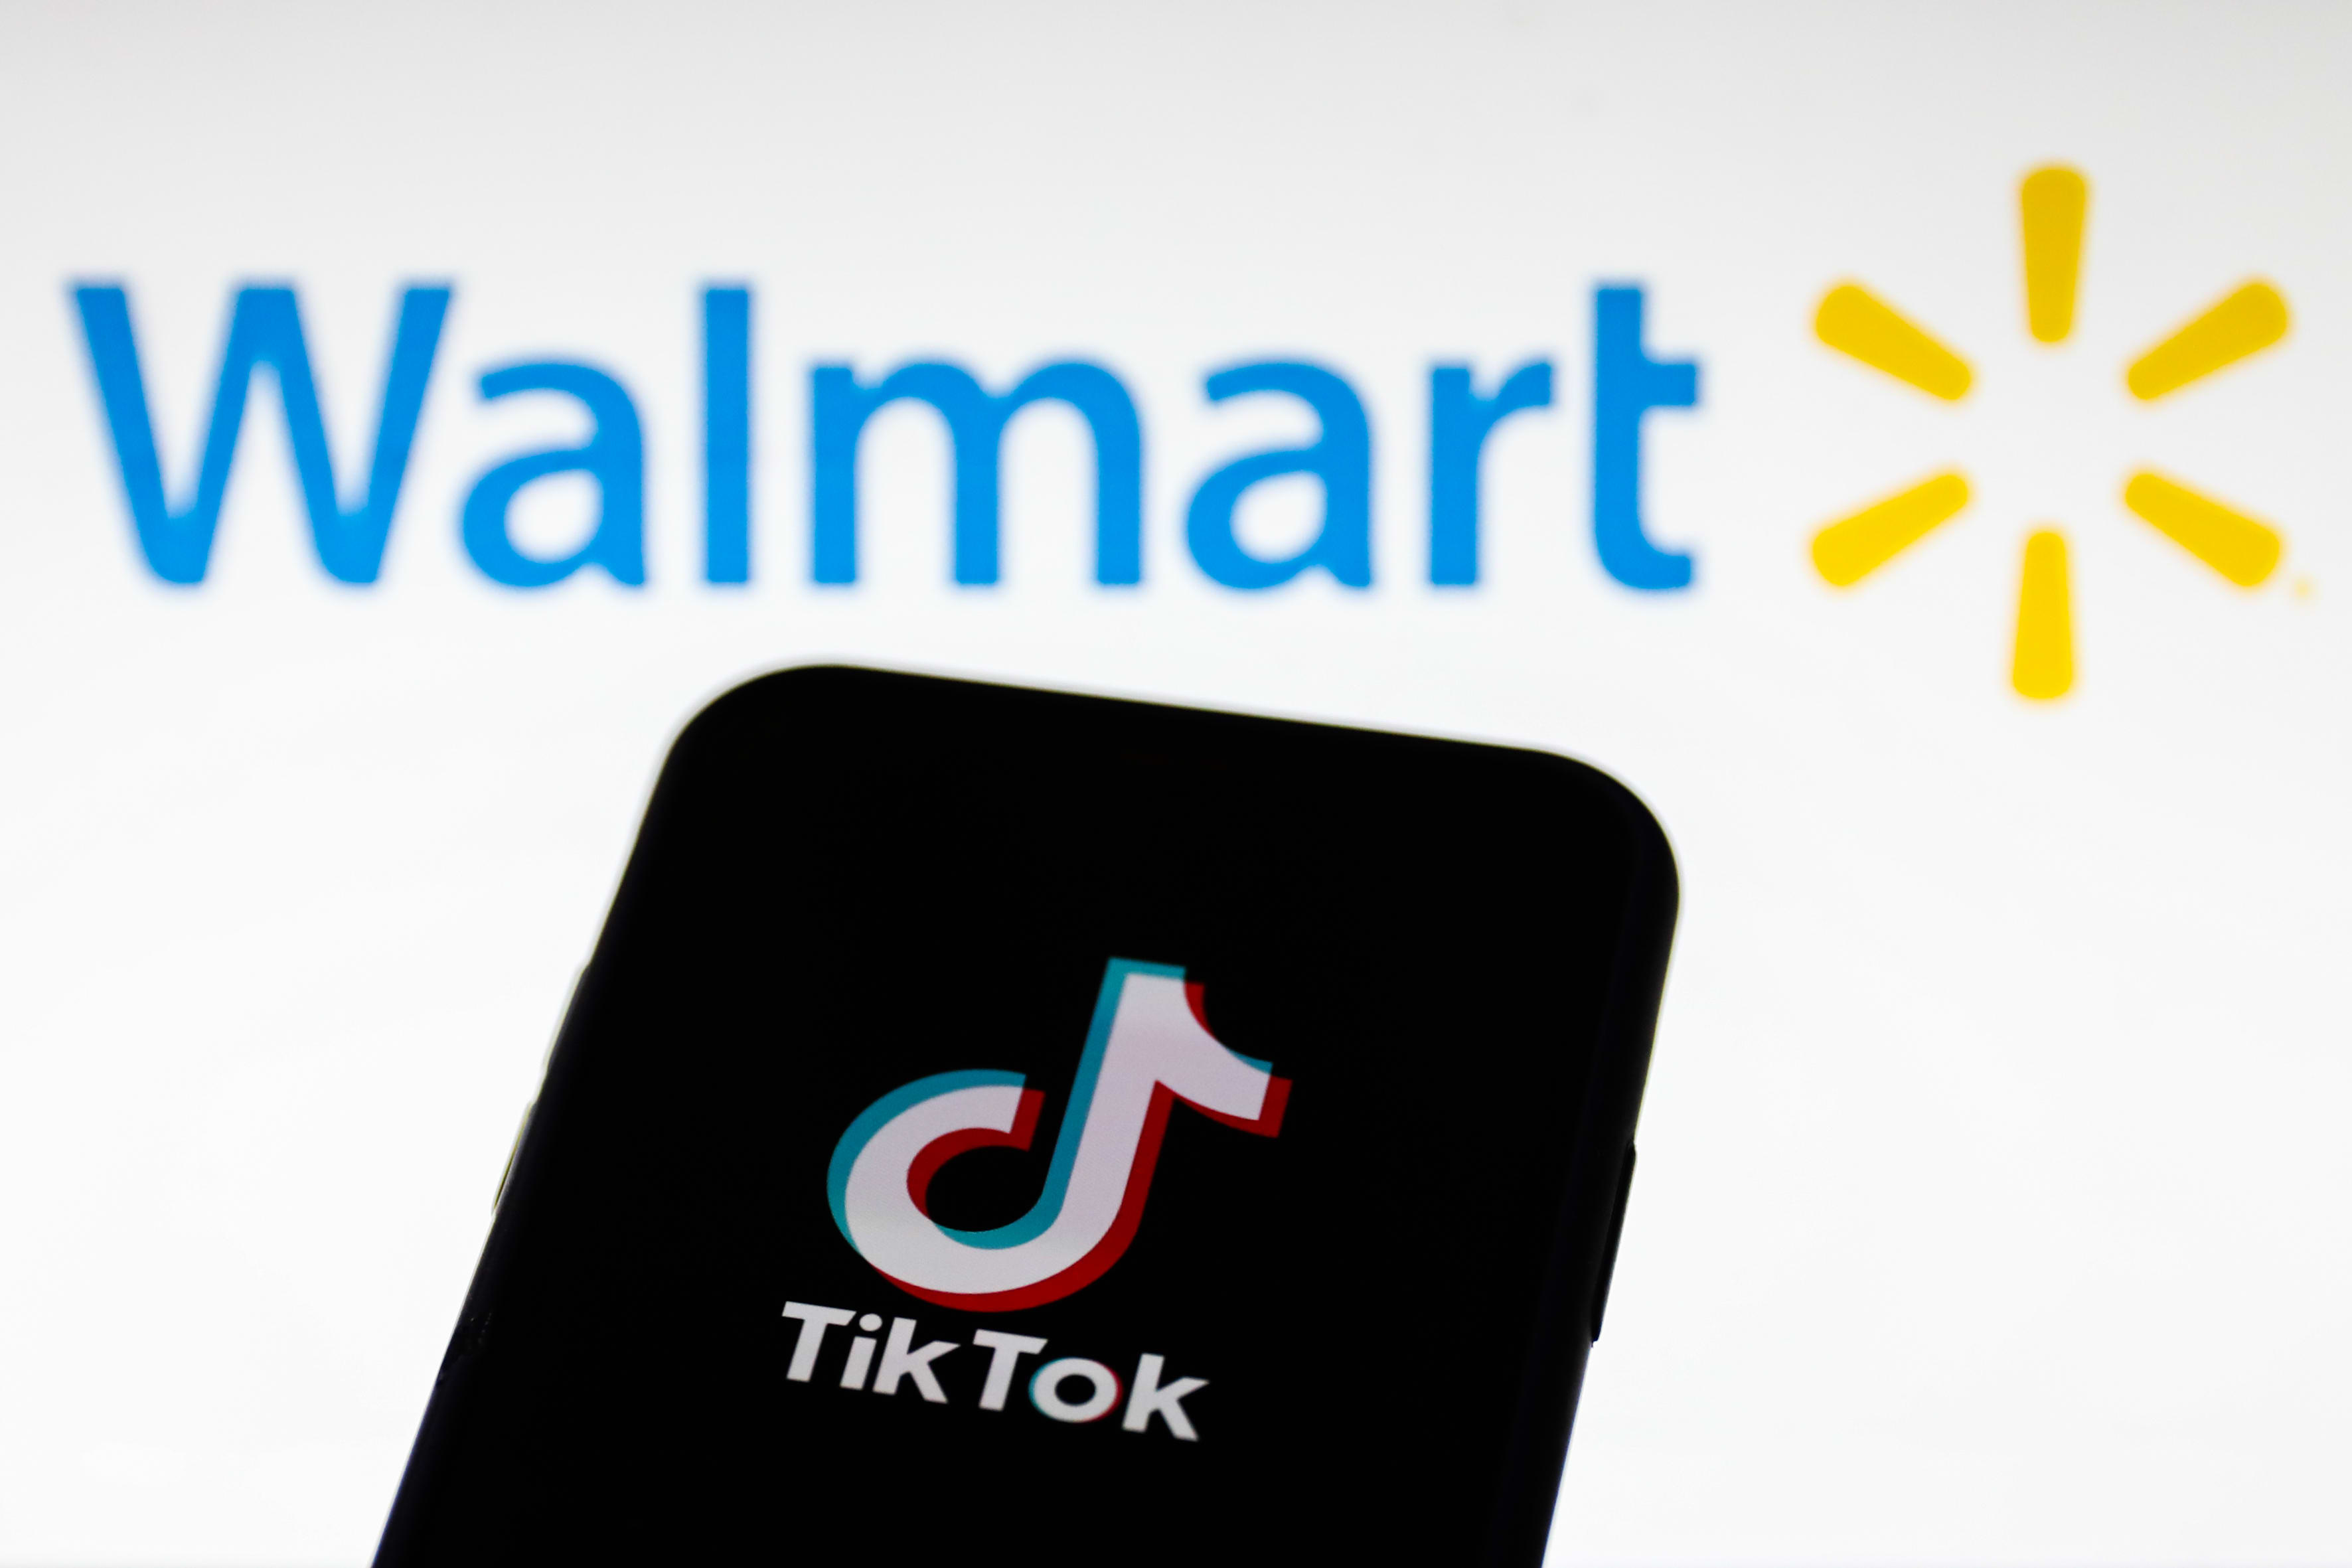 With TikTok deal, Walmart could gain 'a front row seat to the next generation of consumers'